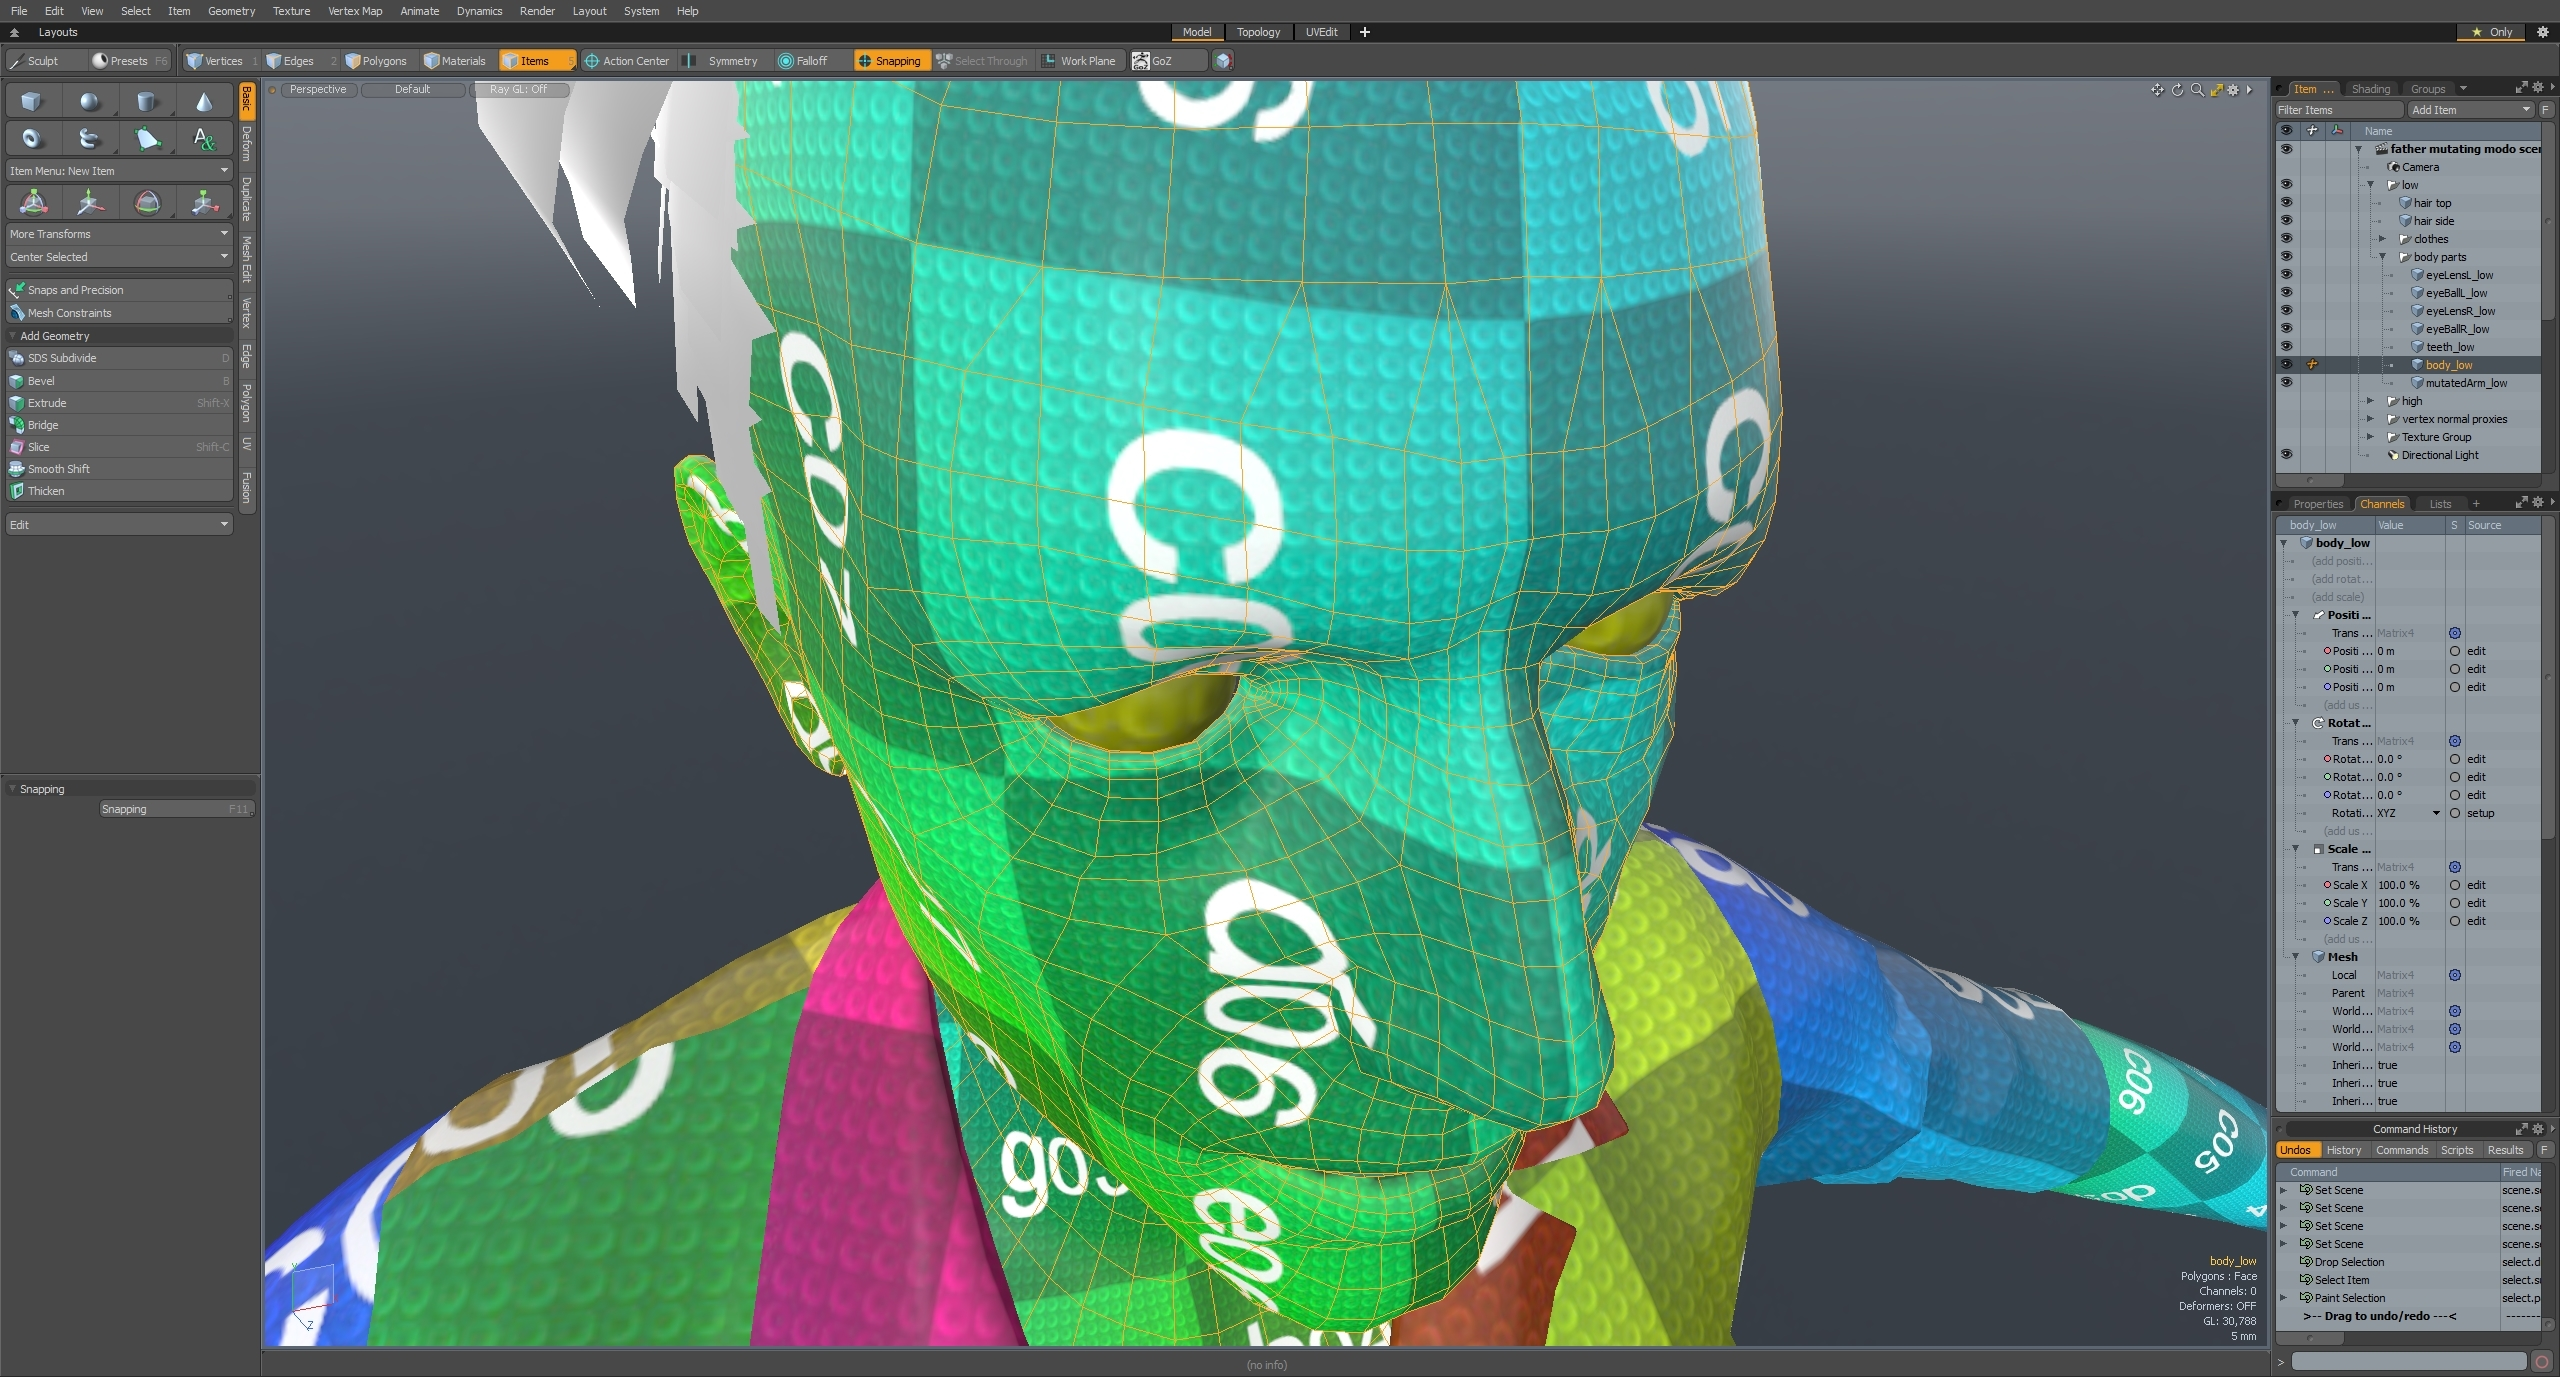 Why are my meshes transforms all messed up in my FBX exports